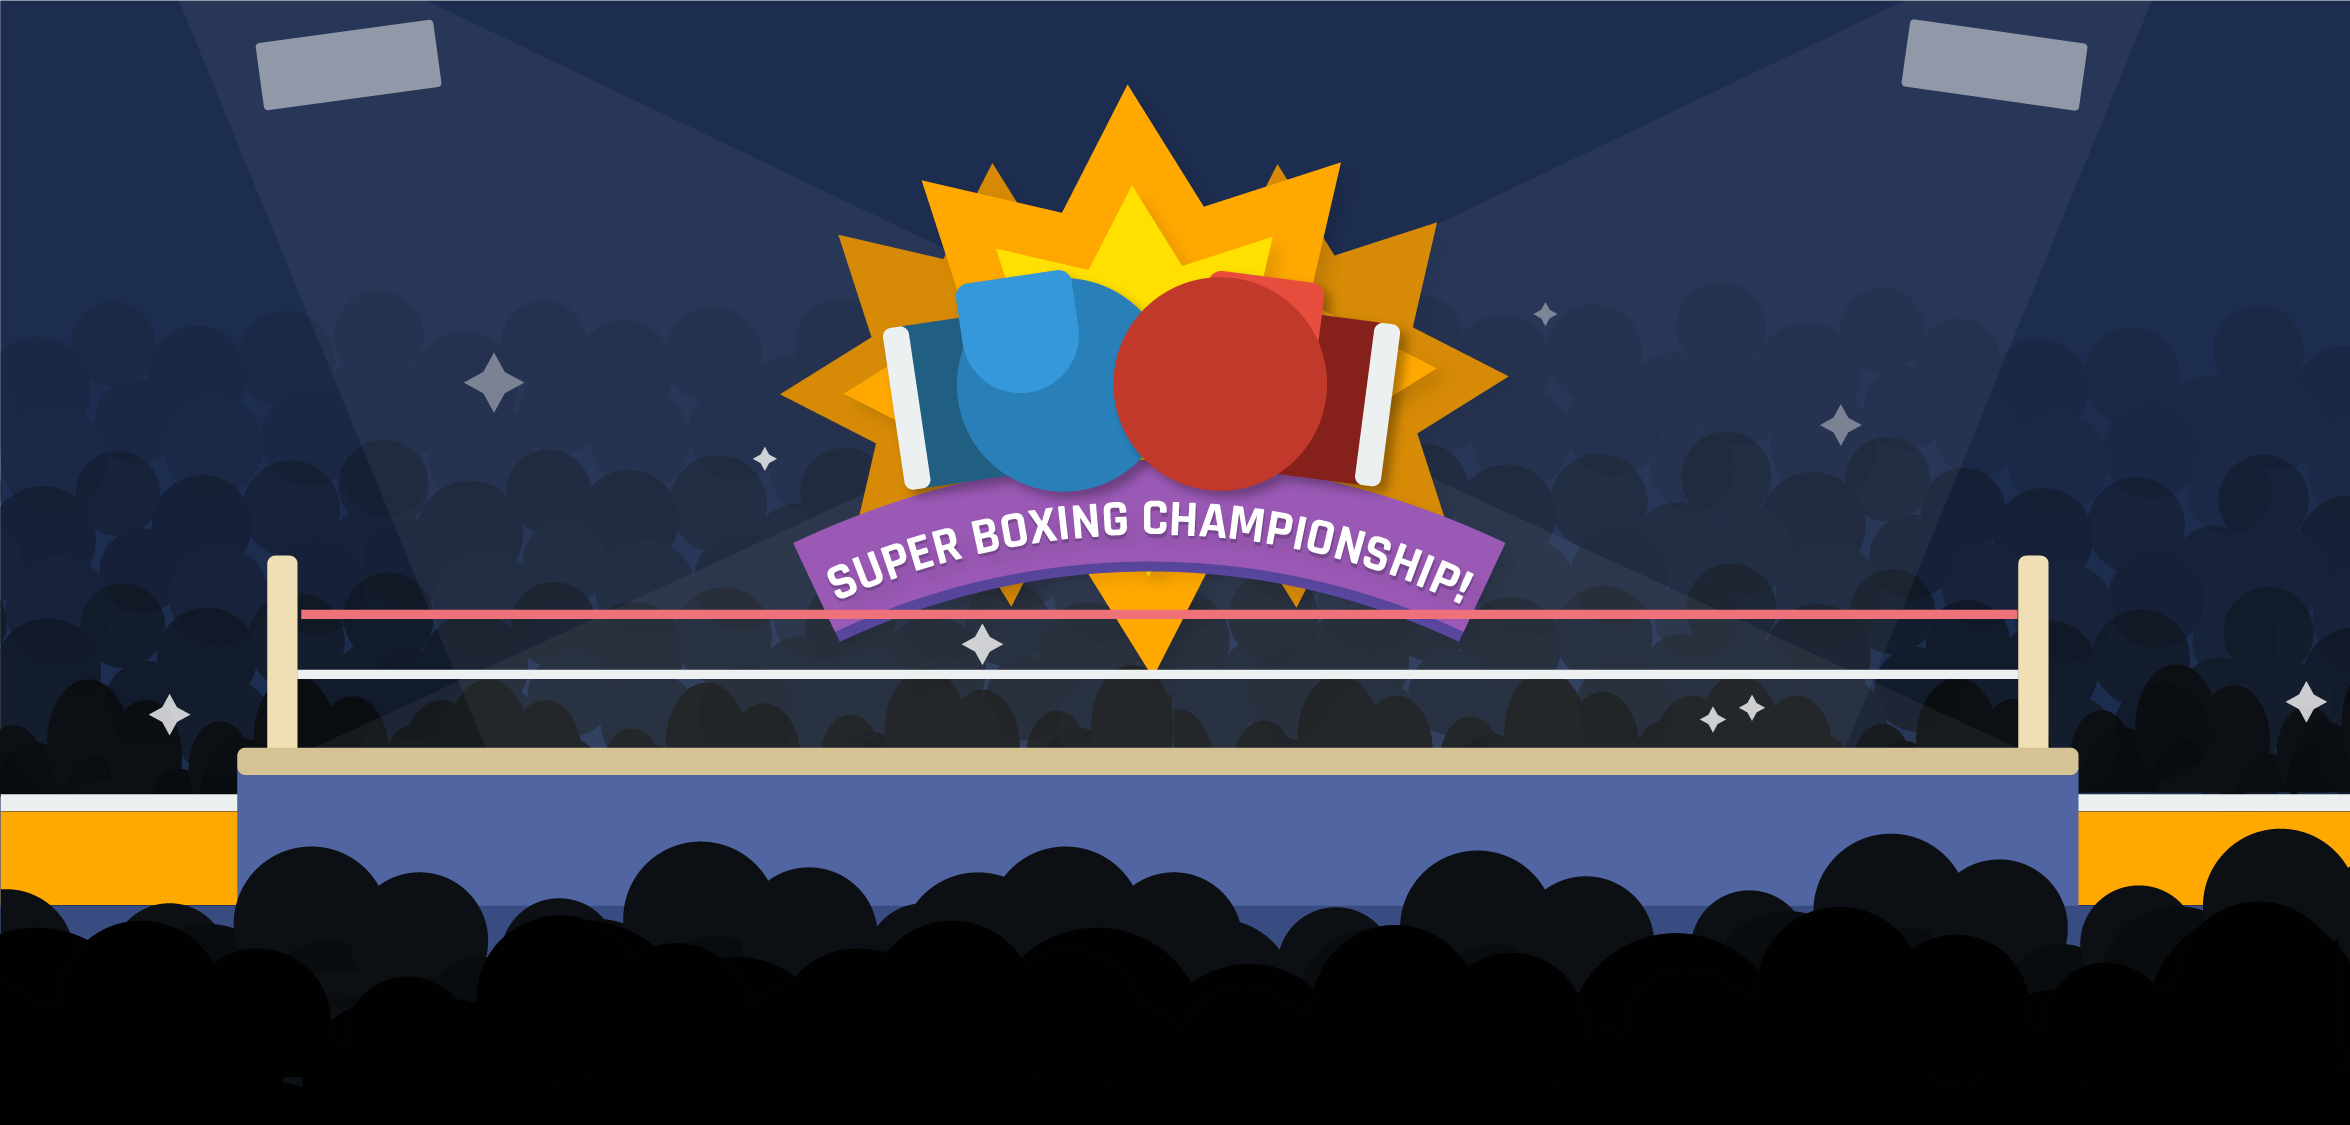 You are currently viewing Clobber Your Foes in Physics Based Boxing Game 'Super Boxing Championship!'